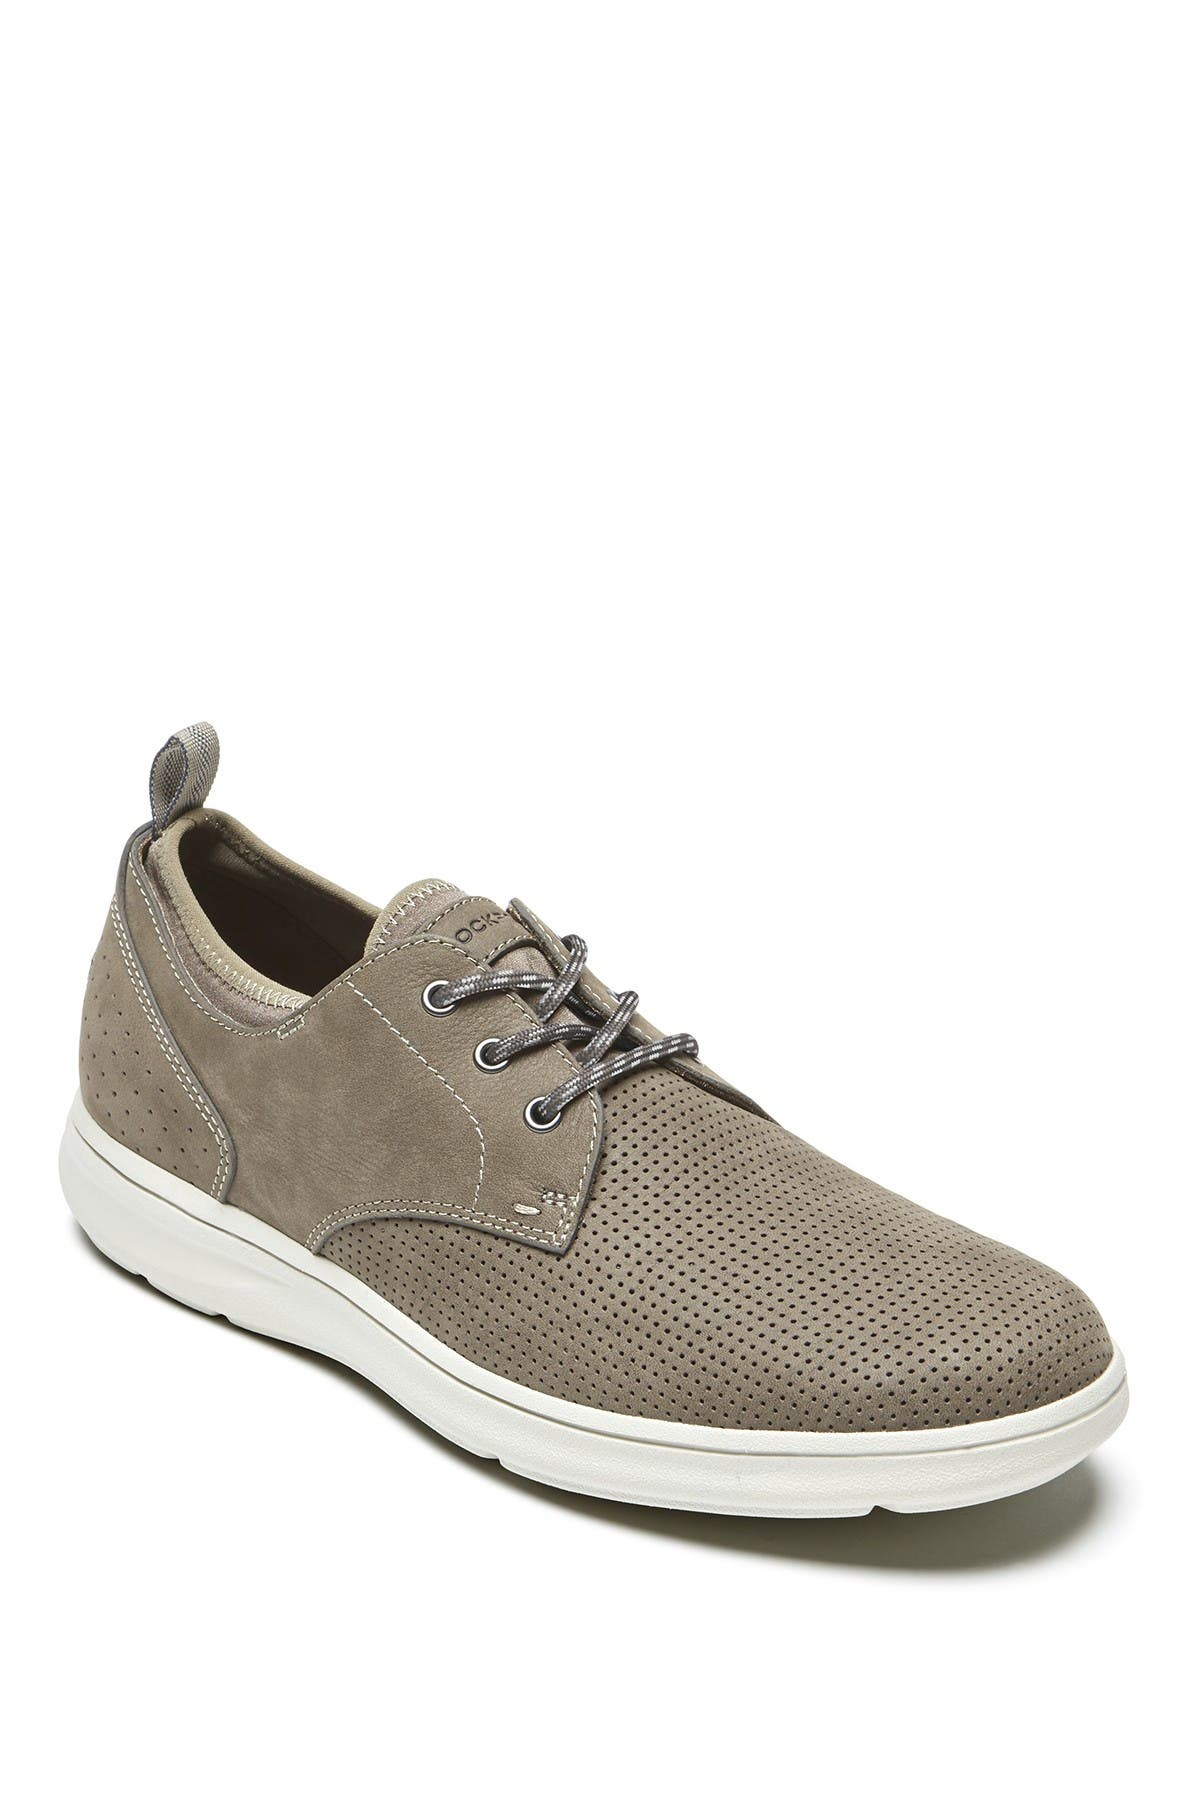 Image of Rockport Beckwith Plain Toe Oxford